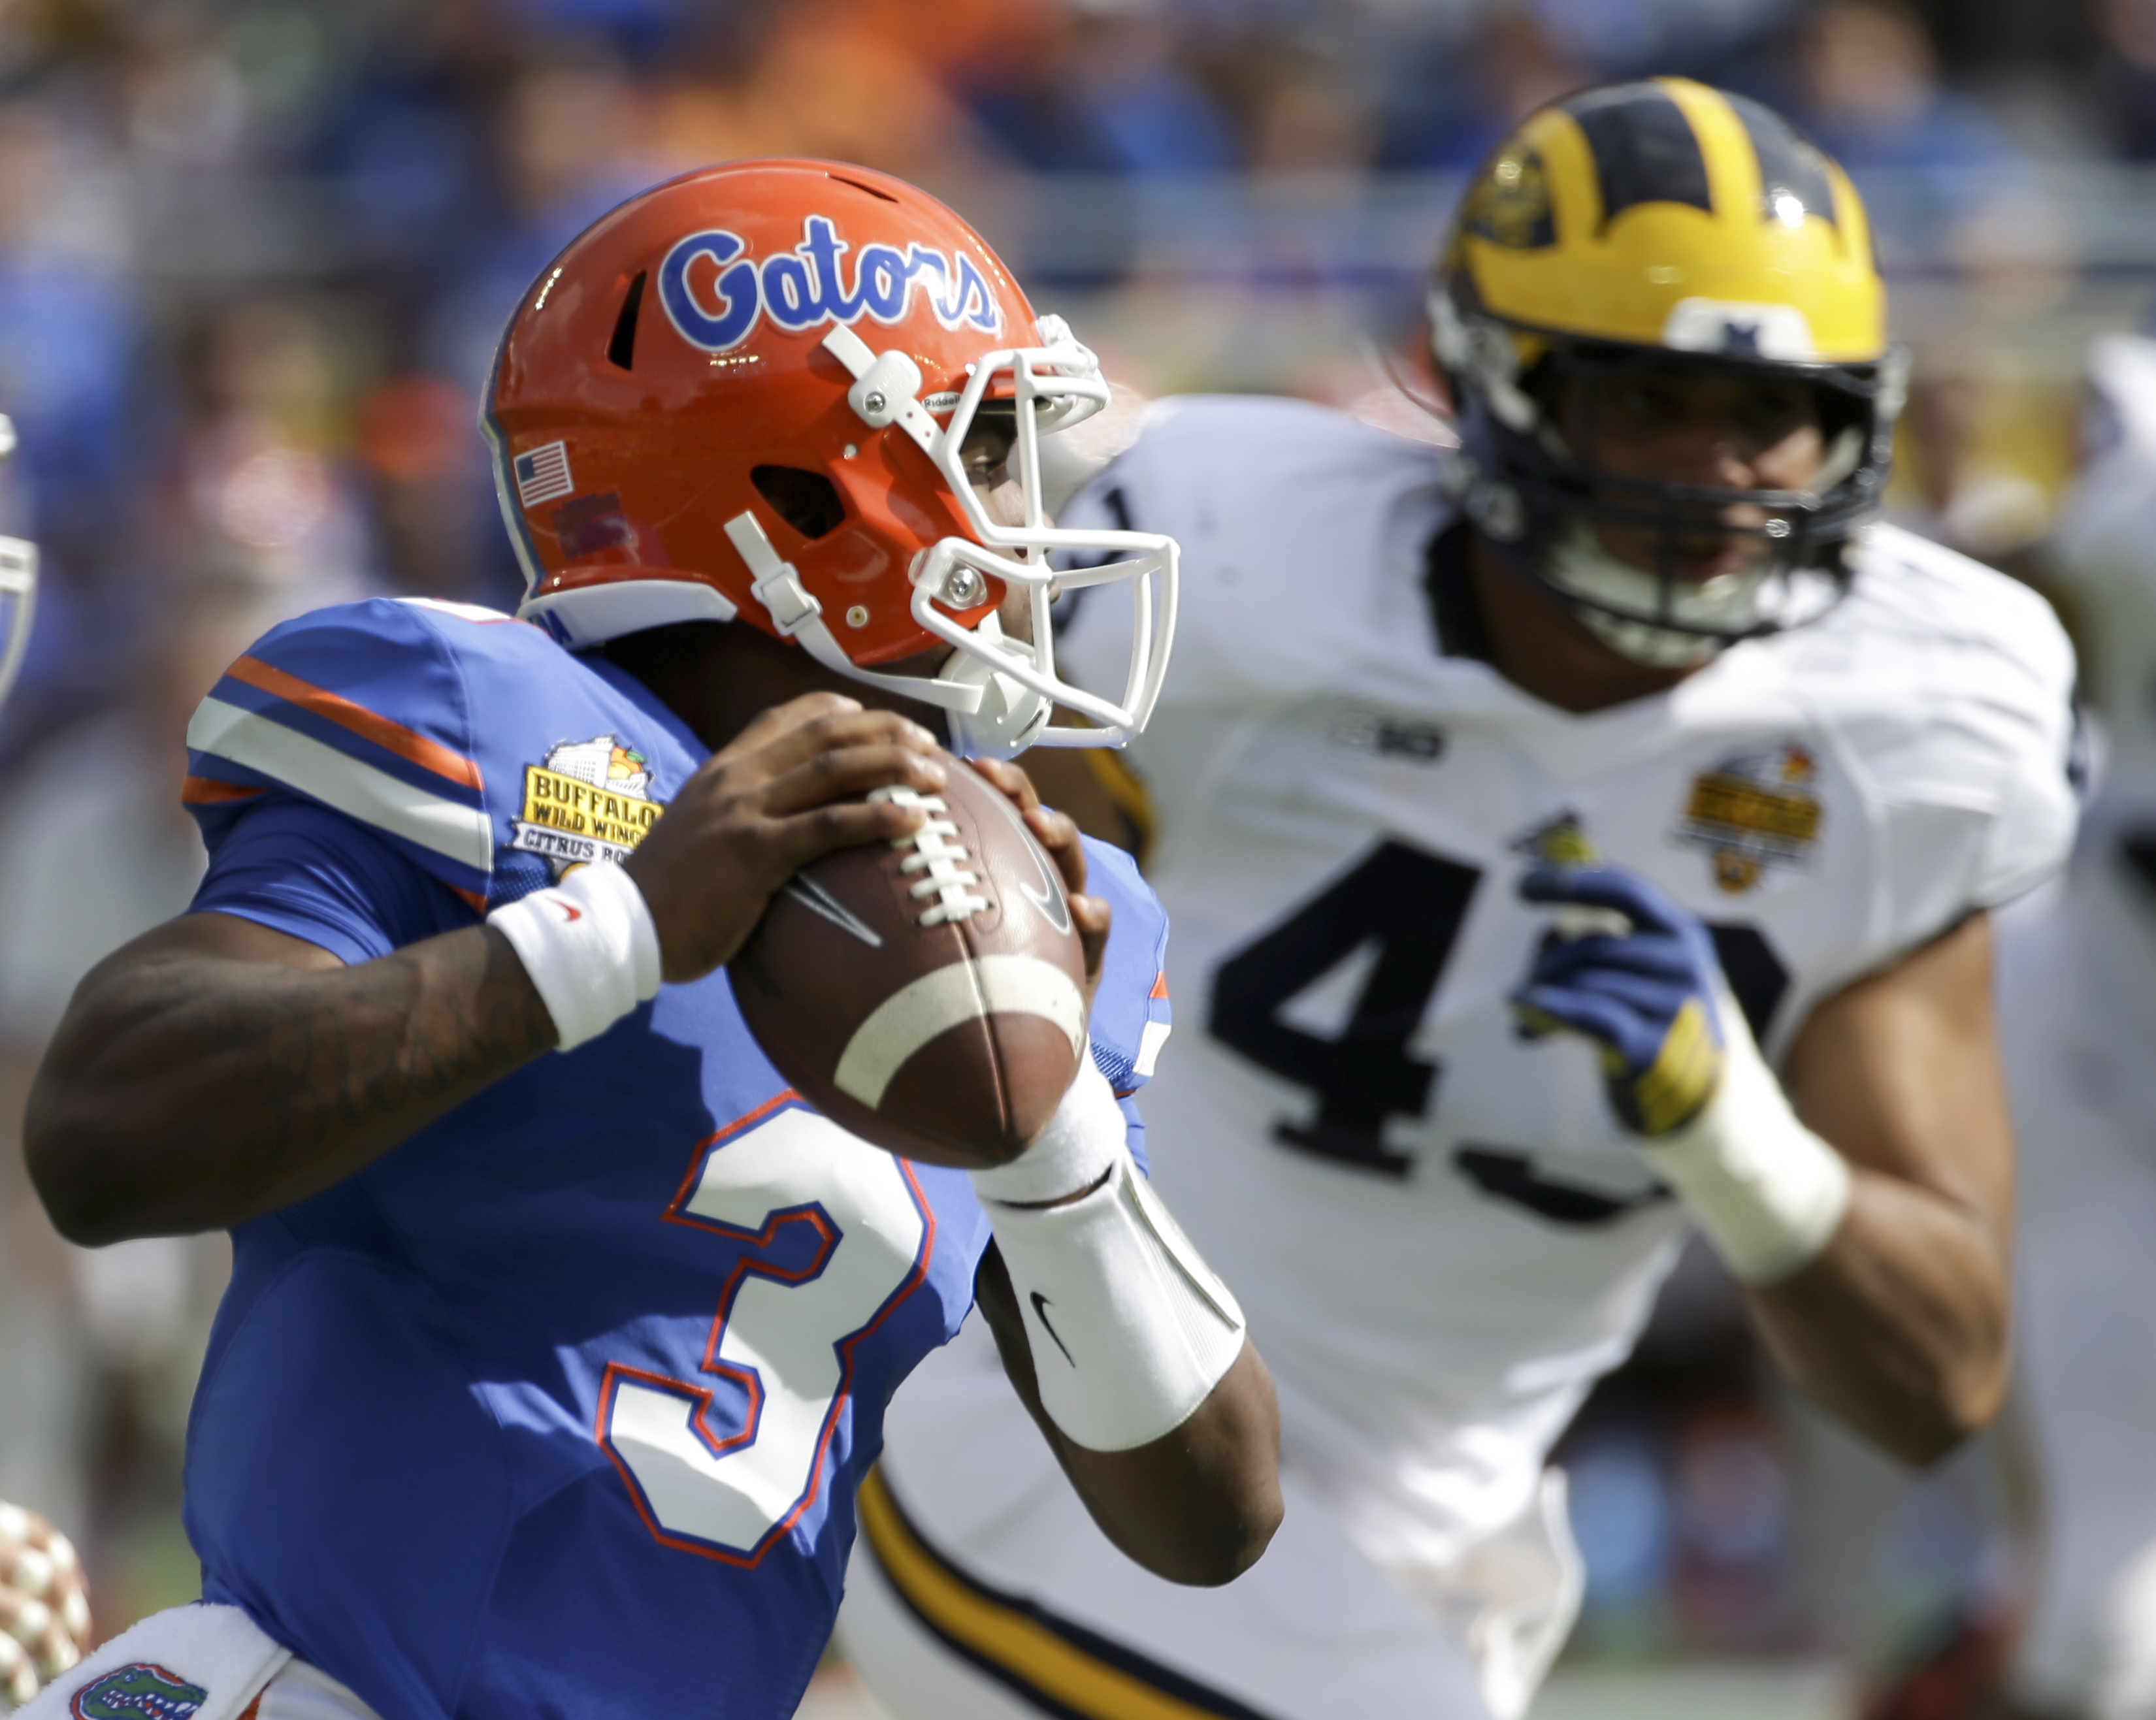 Florida quarterback Treon Harris (3) looks for a receiver as he is pressured by Michigan defensive end Chris Wormley (43) during the first half of the Citrus Bowl NCAA college football game, Friday, Jan. 1, 2016, in Orlando, Fla. (AP Photo/John Raoux)